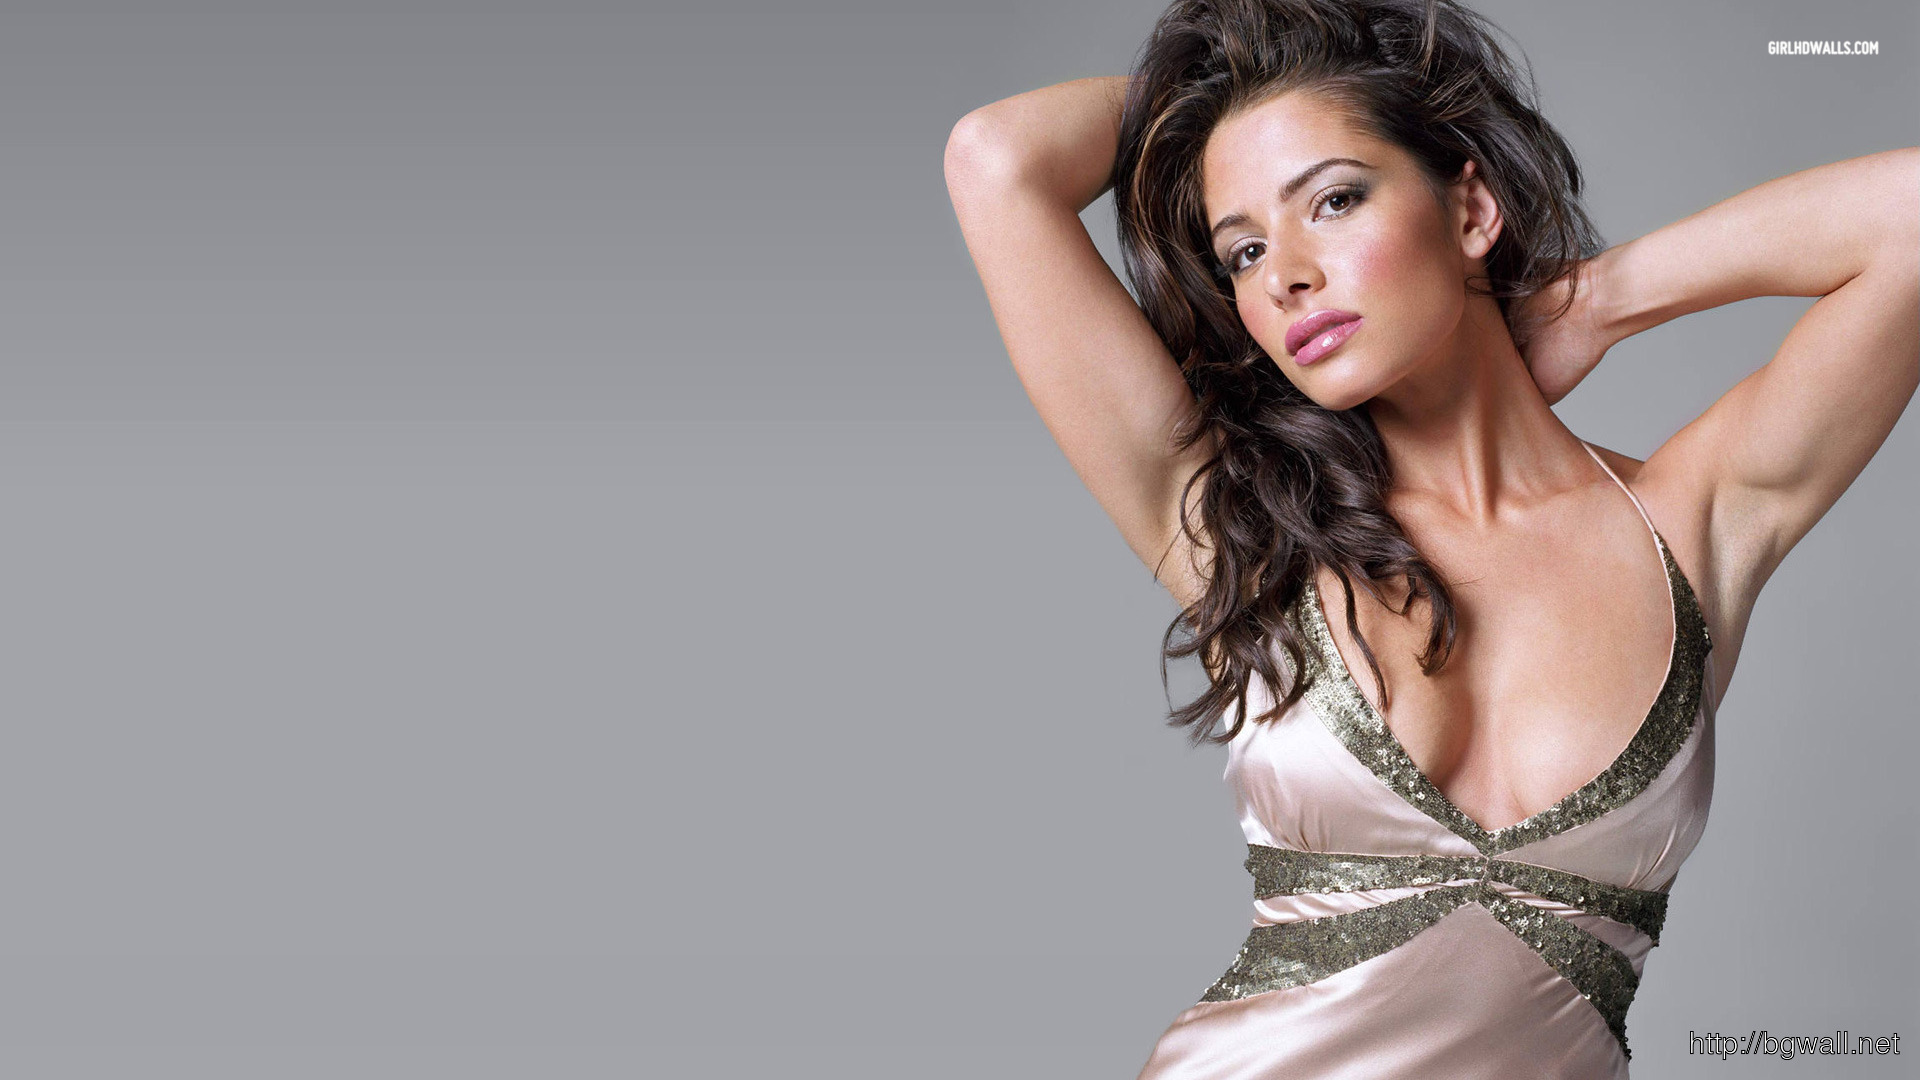 Sarah Shahi 1920x1080 Wallpaper Full Size